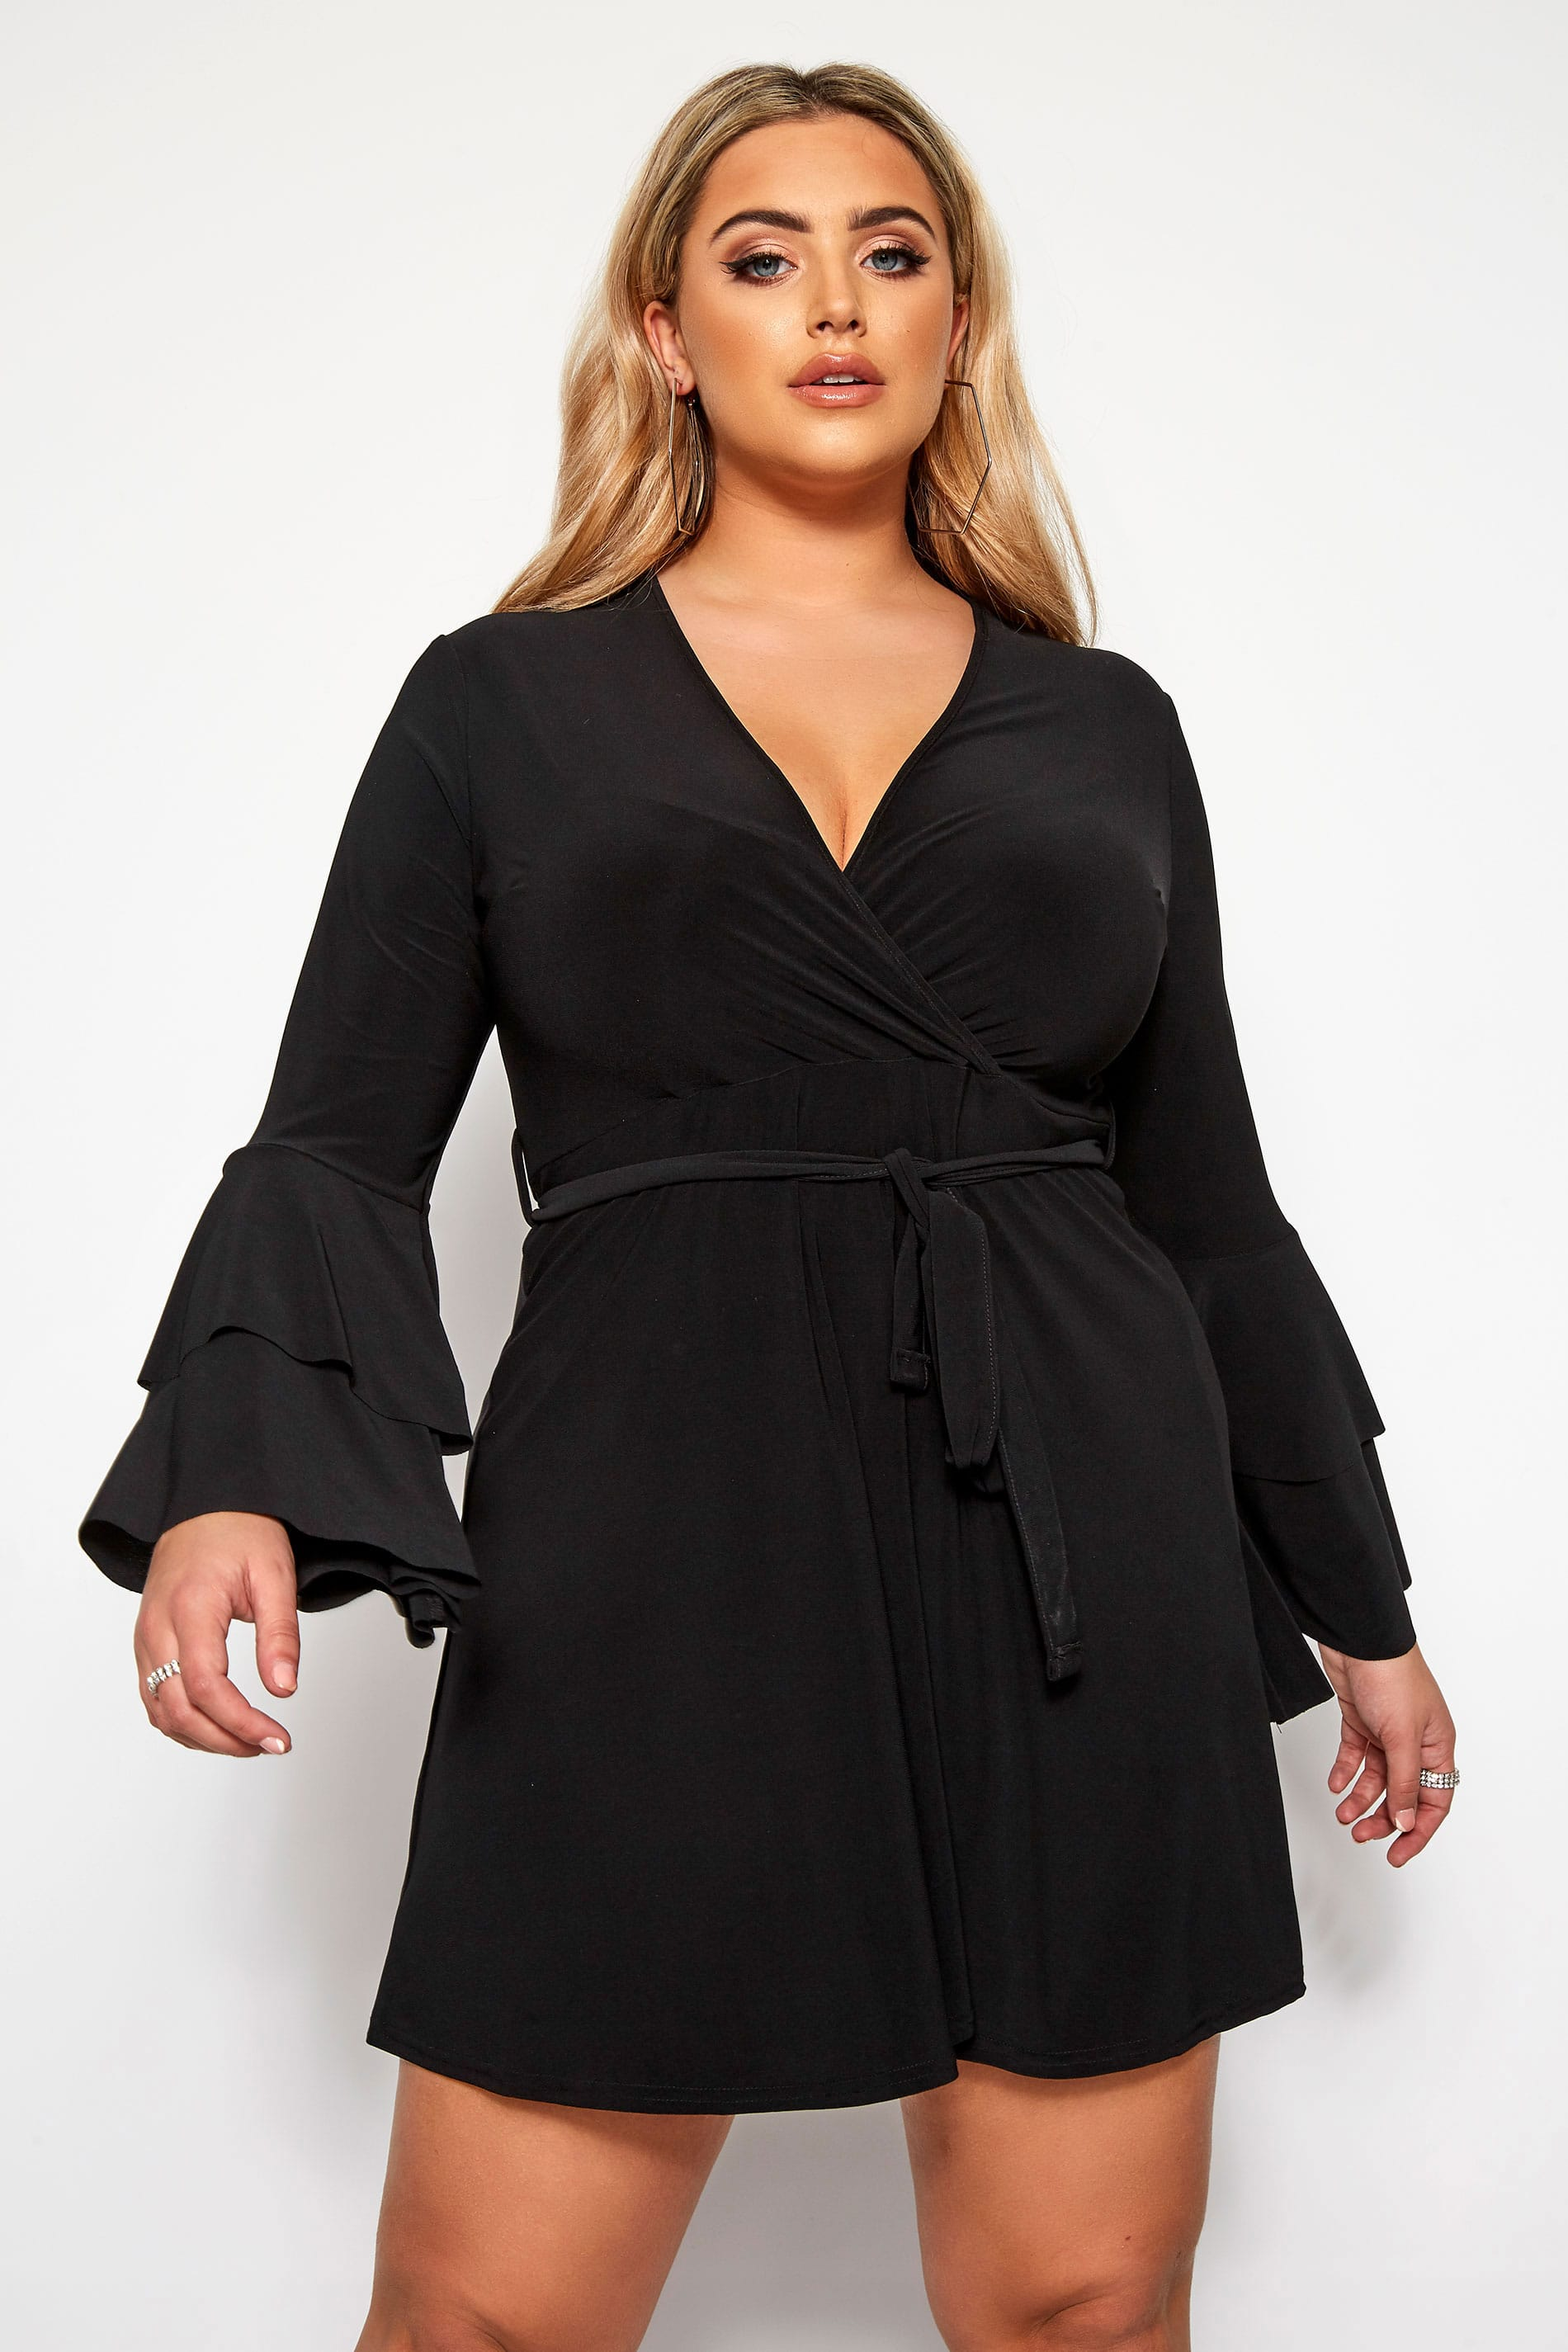 LIMITED COLLECTION Black Frill Sleeve Wrap Dress